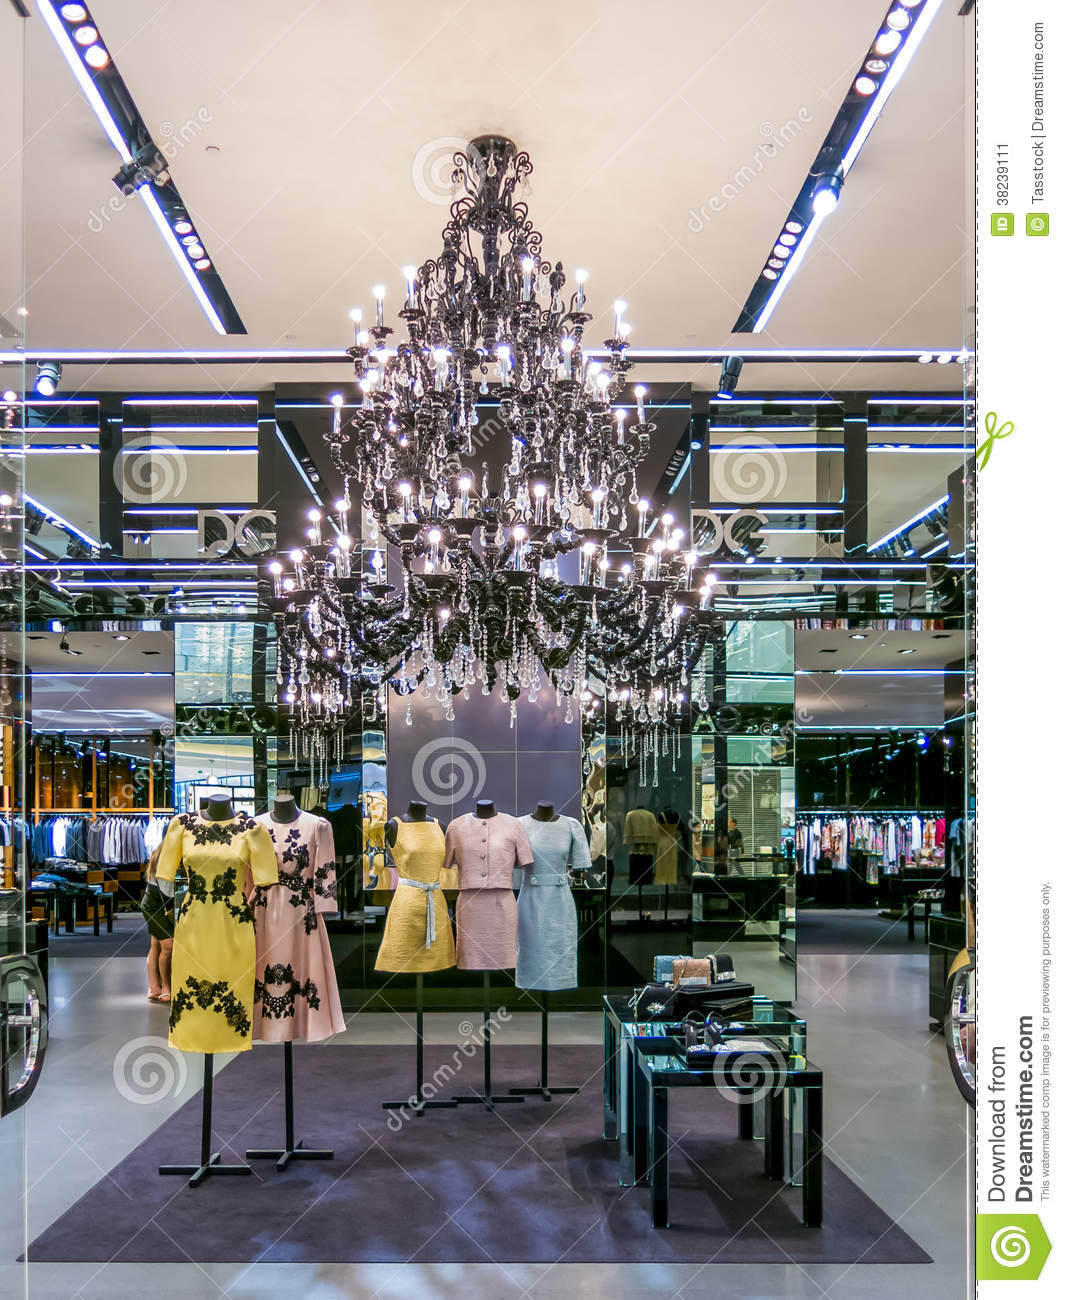 bb1ff8735f92 Dolce & Gabbana Boutique In Dubai Mall Editorial Photo - Image of ...